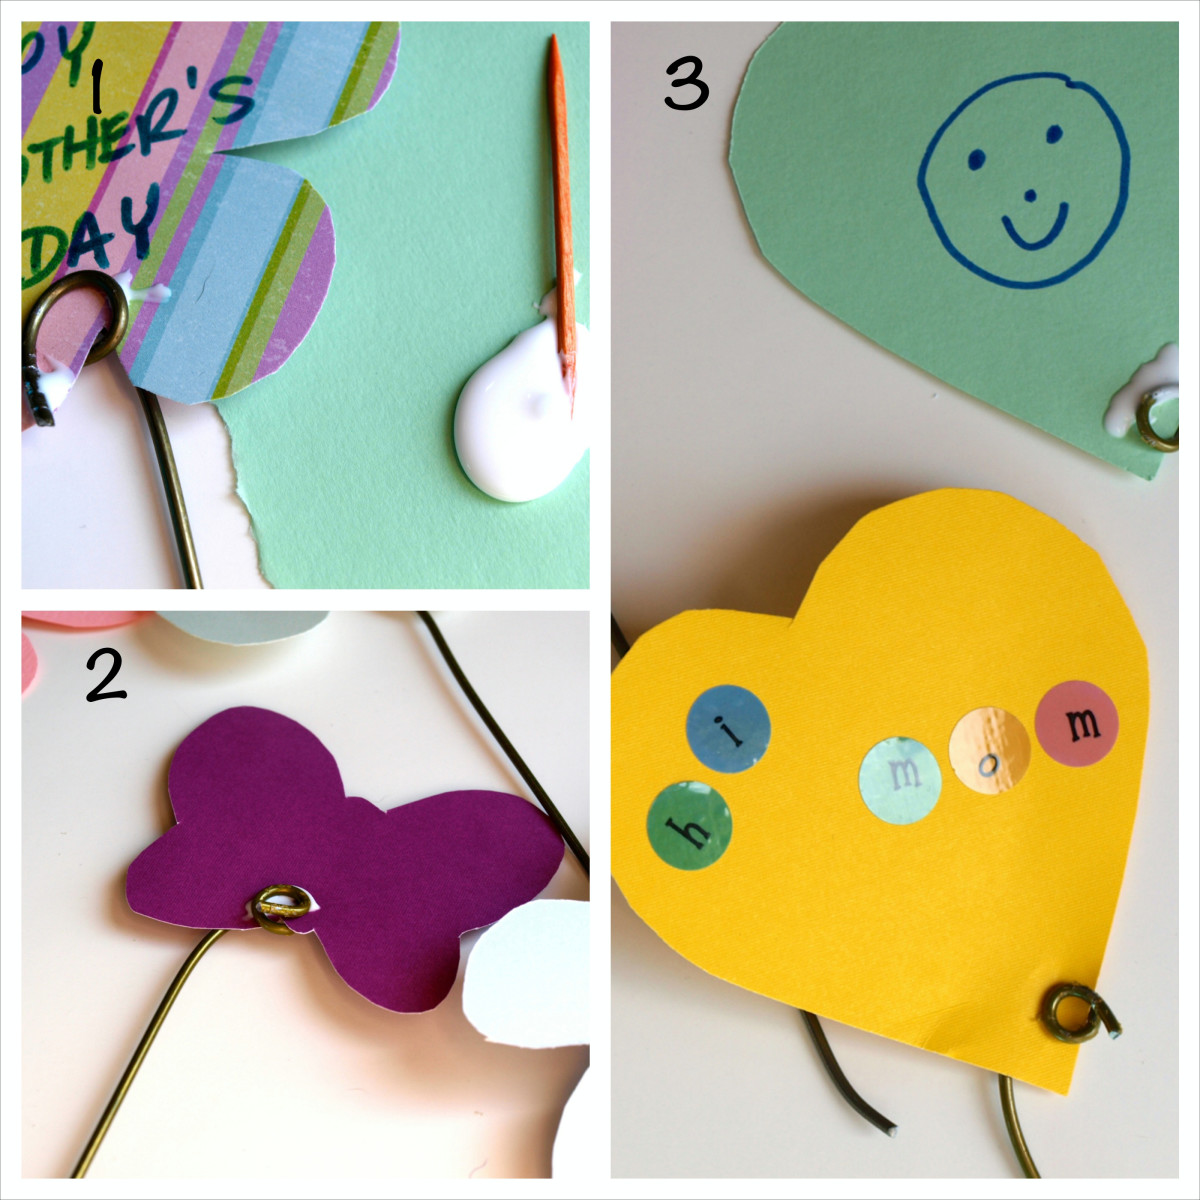 Some of the holders will not hold the paper shapes well, so the shapes will need to be glued.